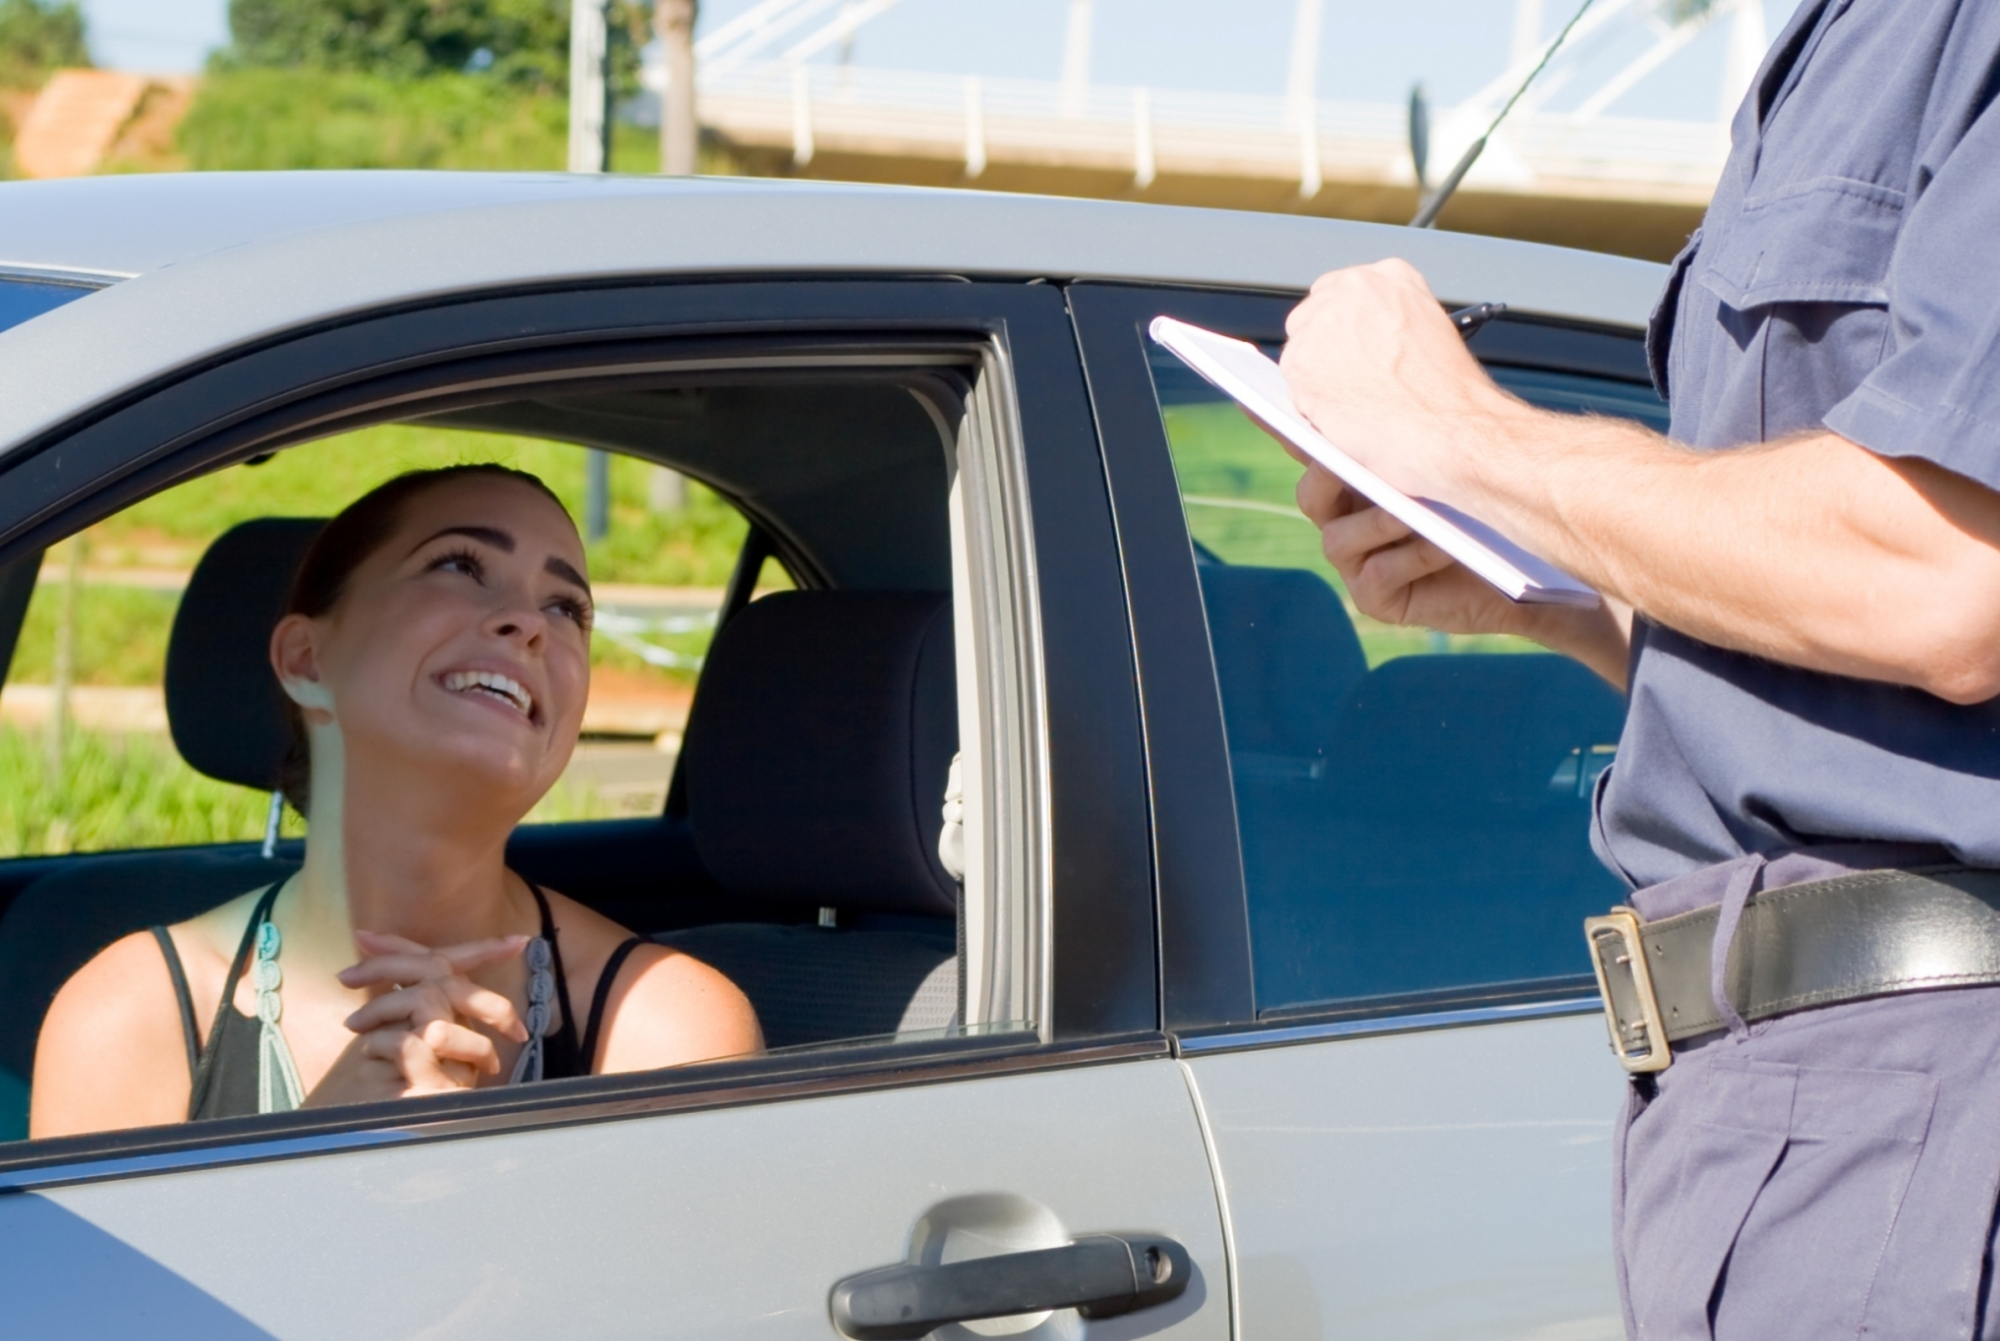 Top Five Things to Remember When Pulled over for a Traffic Violation